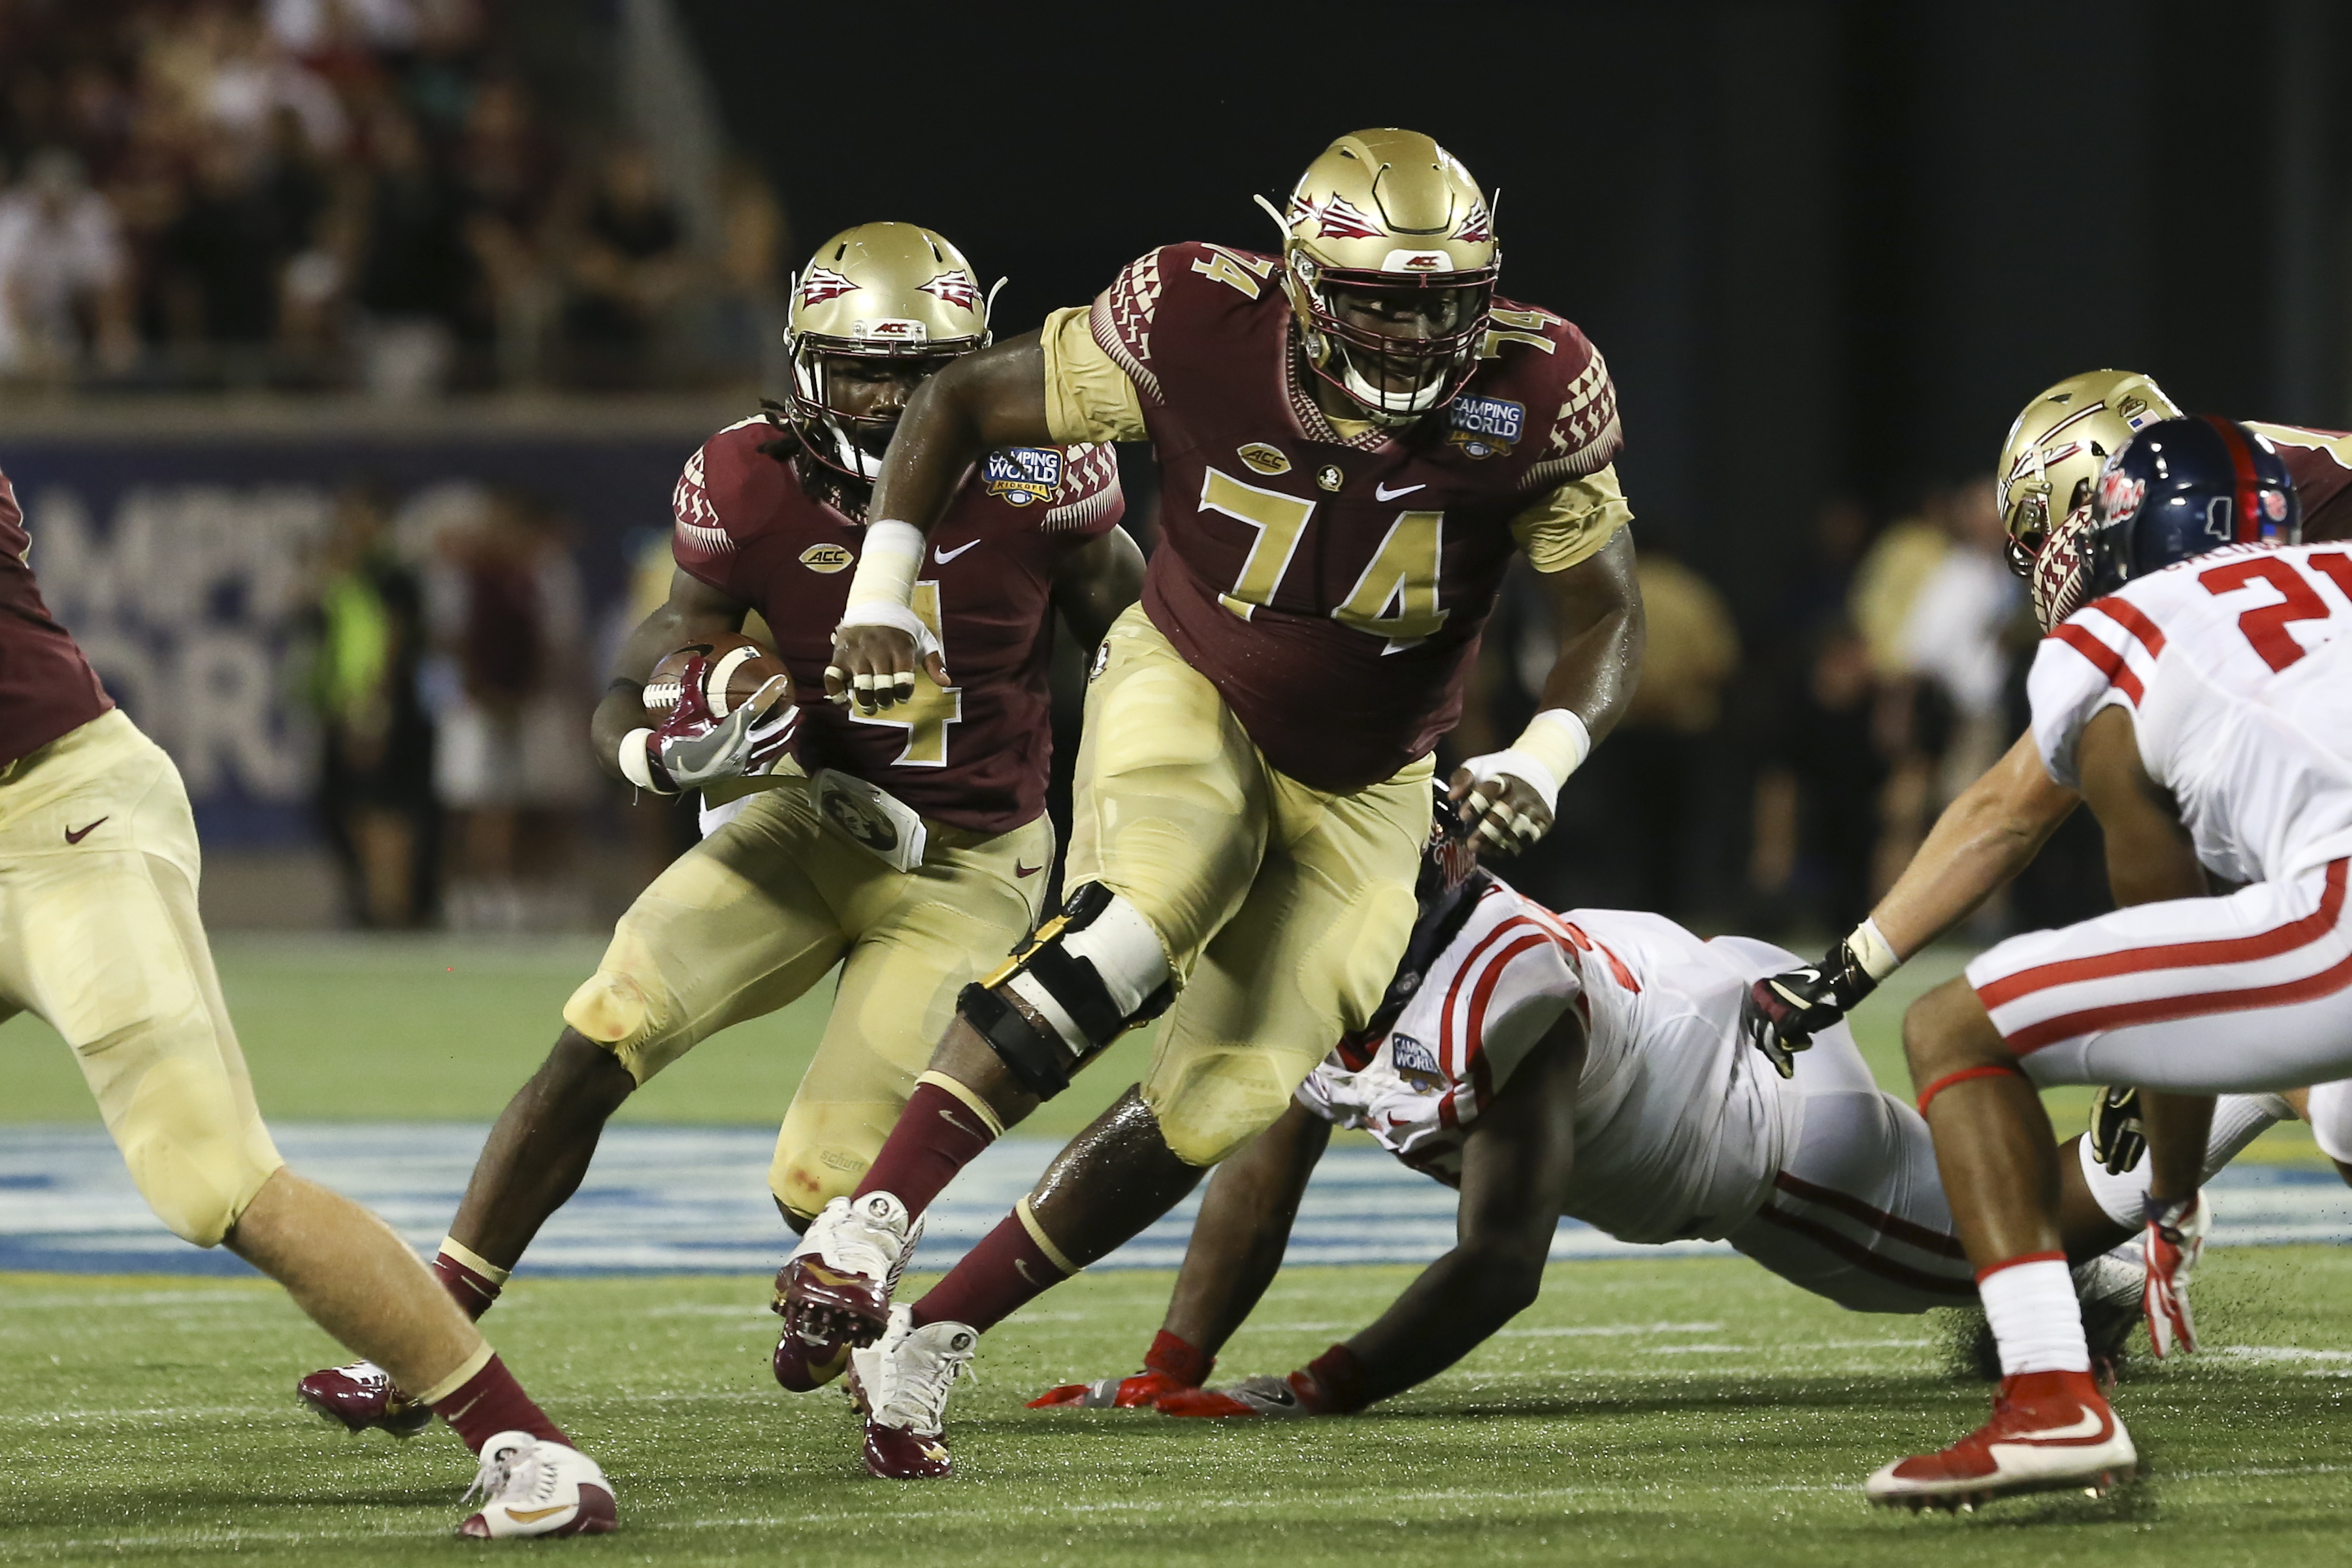 2017 05 kickoff time for national championship game - 05 September 2016 Florida State Seminoles Offensive Lineman Derrick Kelly Ii 74 Blocks For Florida State Seminoles Running Back Dalvin Cook 4 During